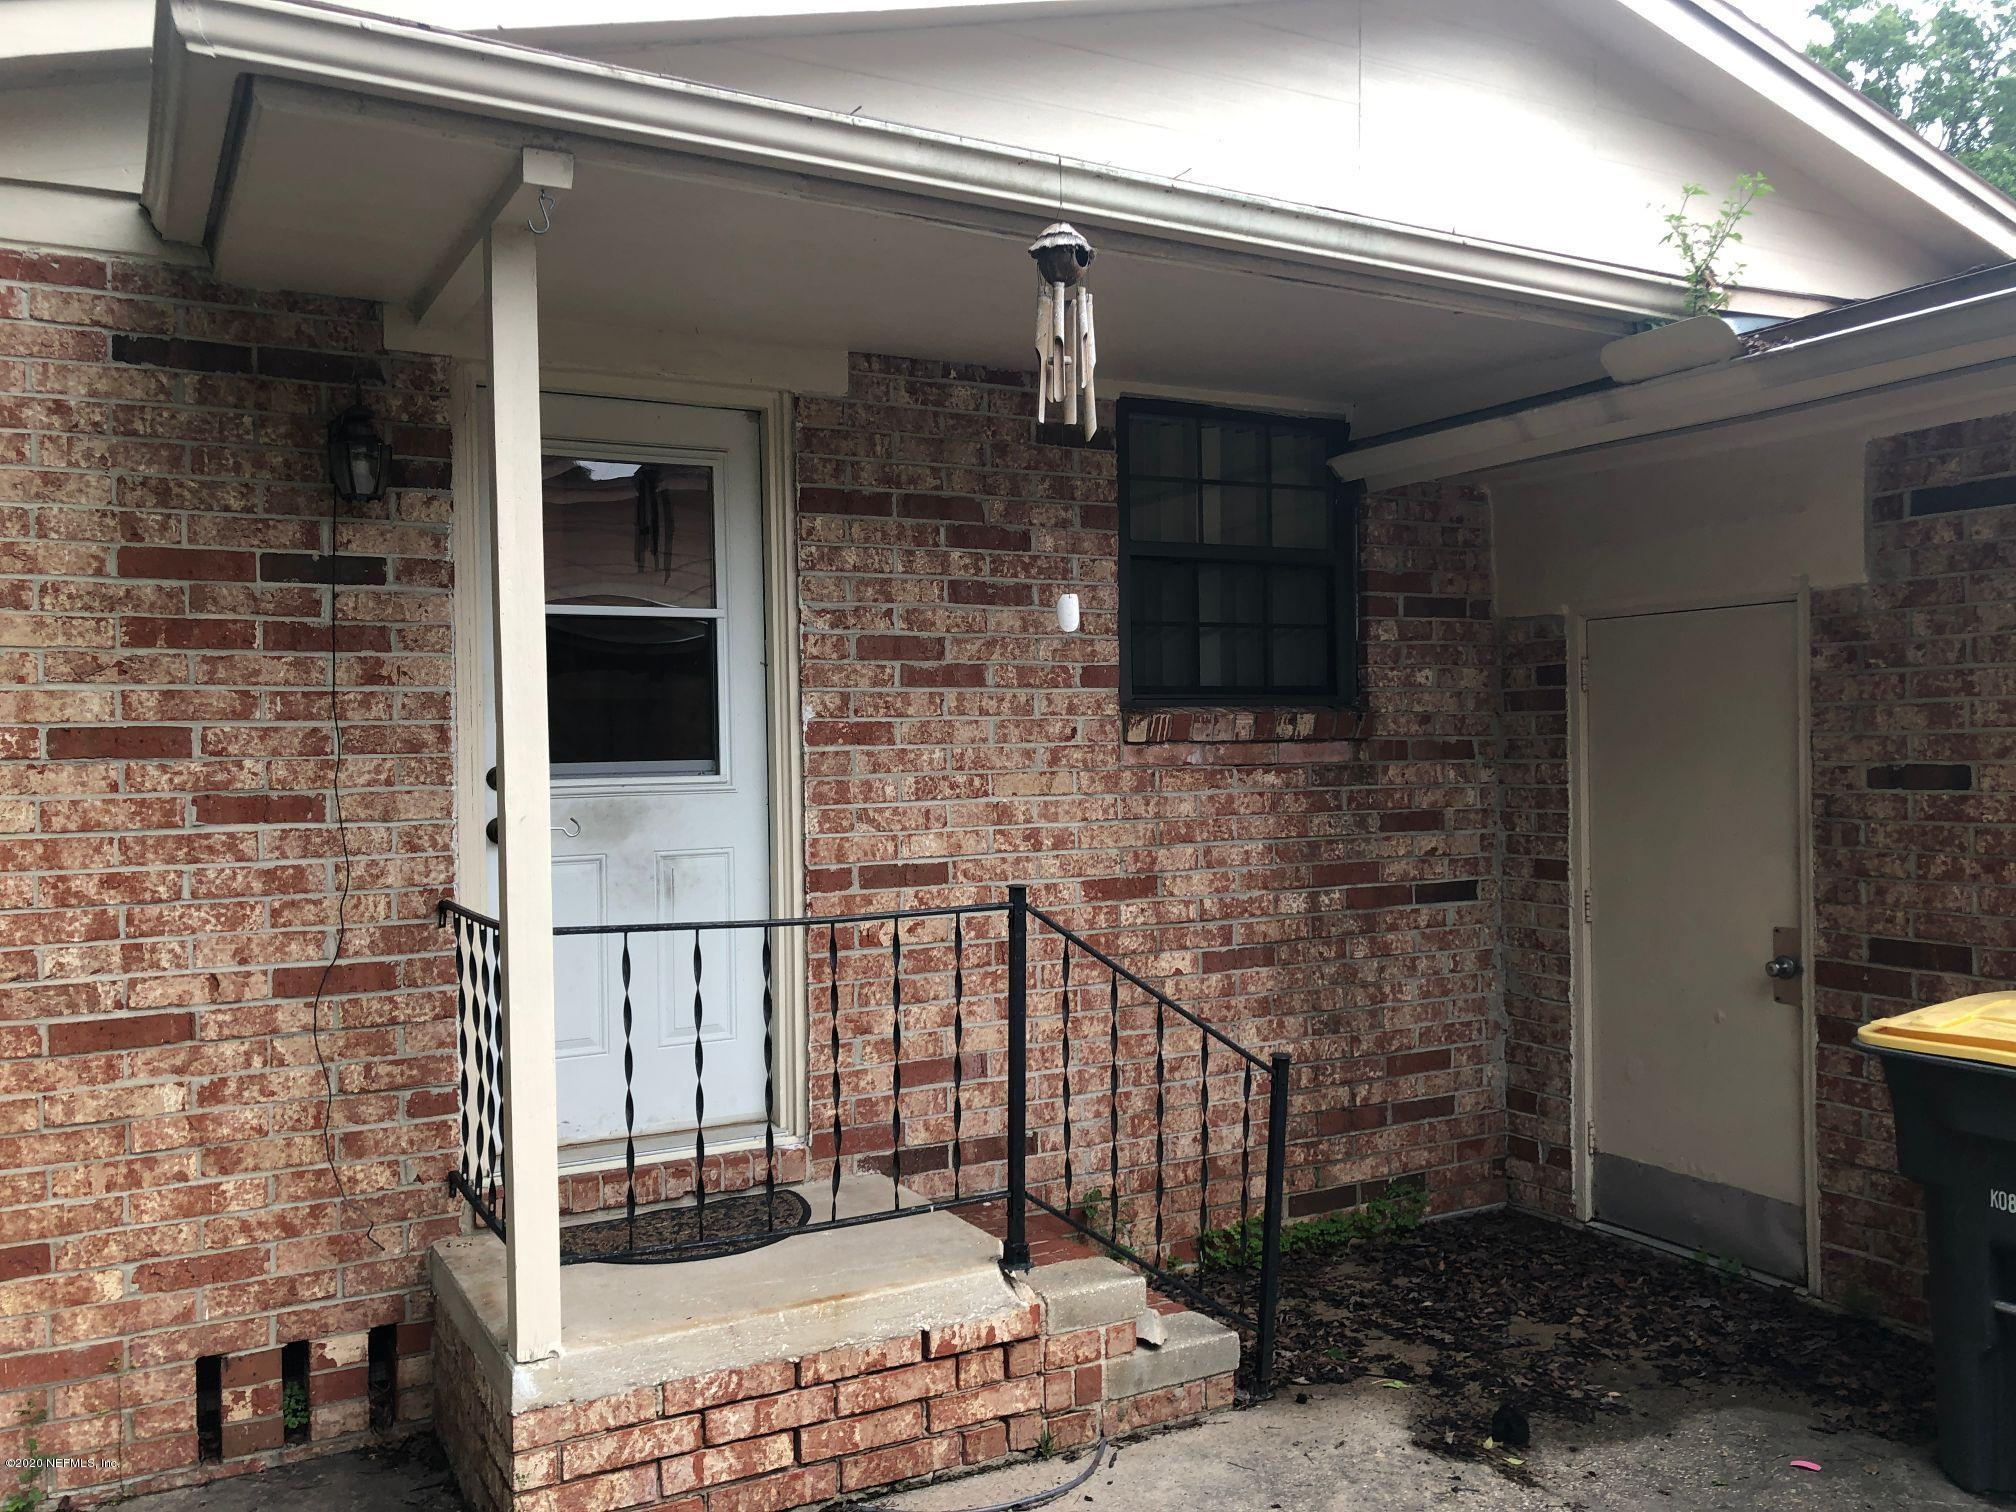 4126 DAYRL, JACKSONVILLE, FLORIDA 32207, 4 Bedrooms Bedrooms, ,2 BathroomsBathrooms,Residential,For sale,DAYRL,1052371